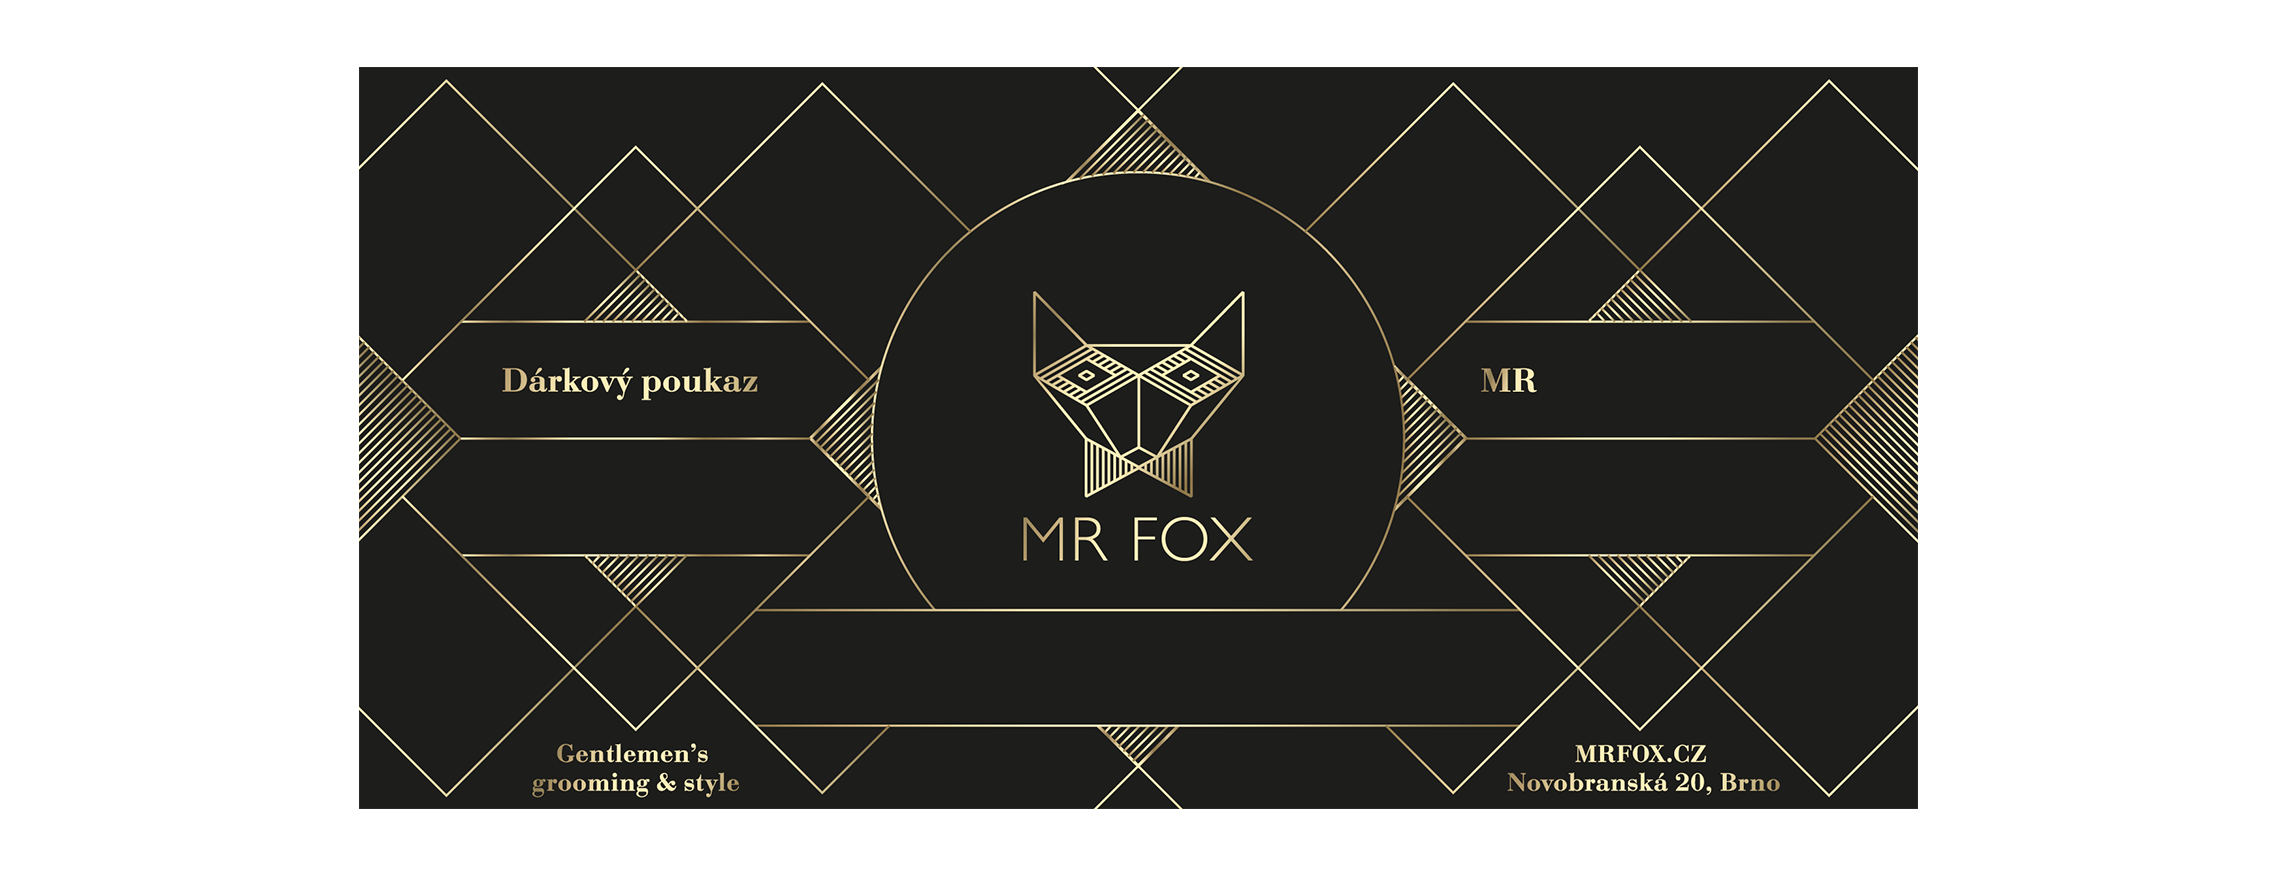 MR_FOX_Design_Veronika_Rut_Novakova